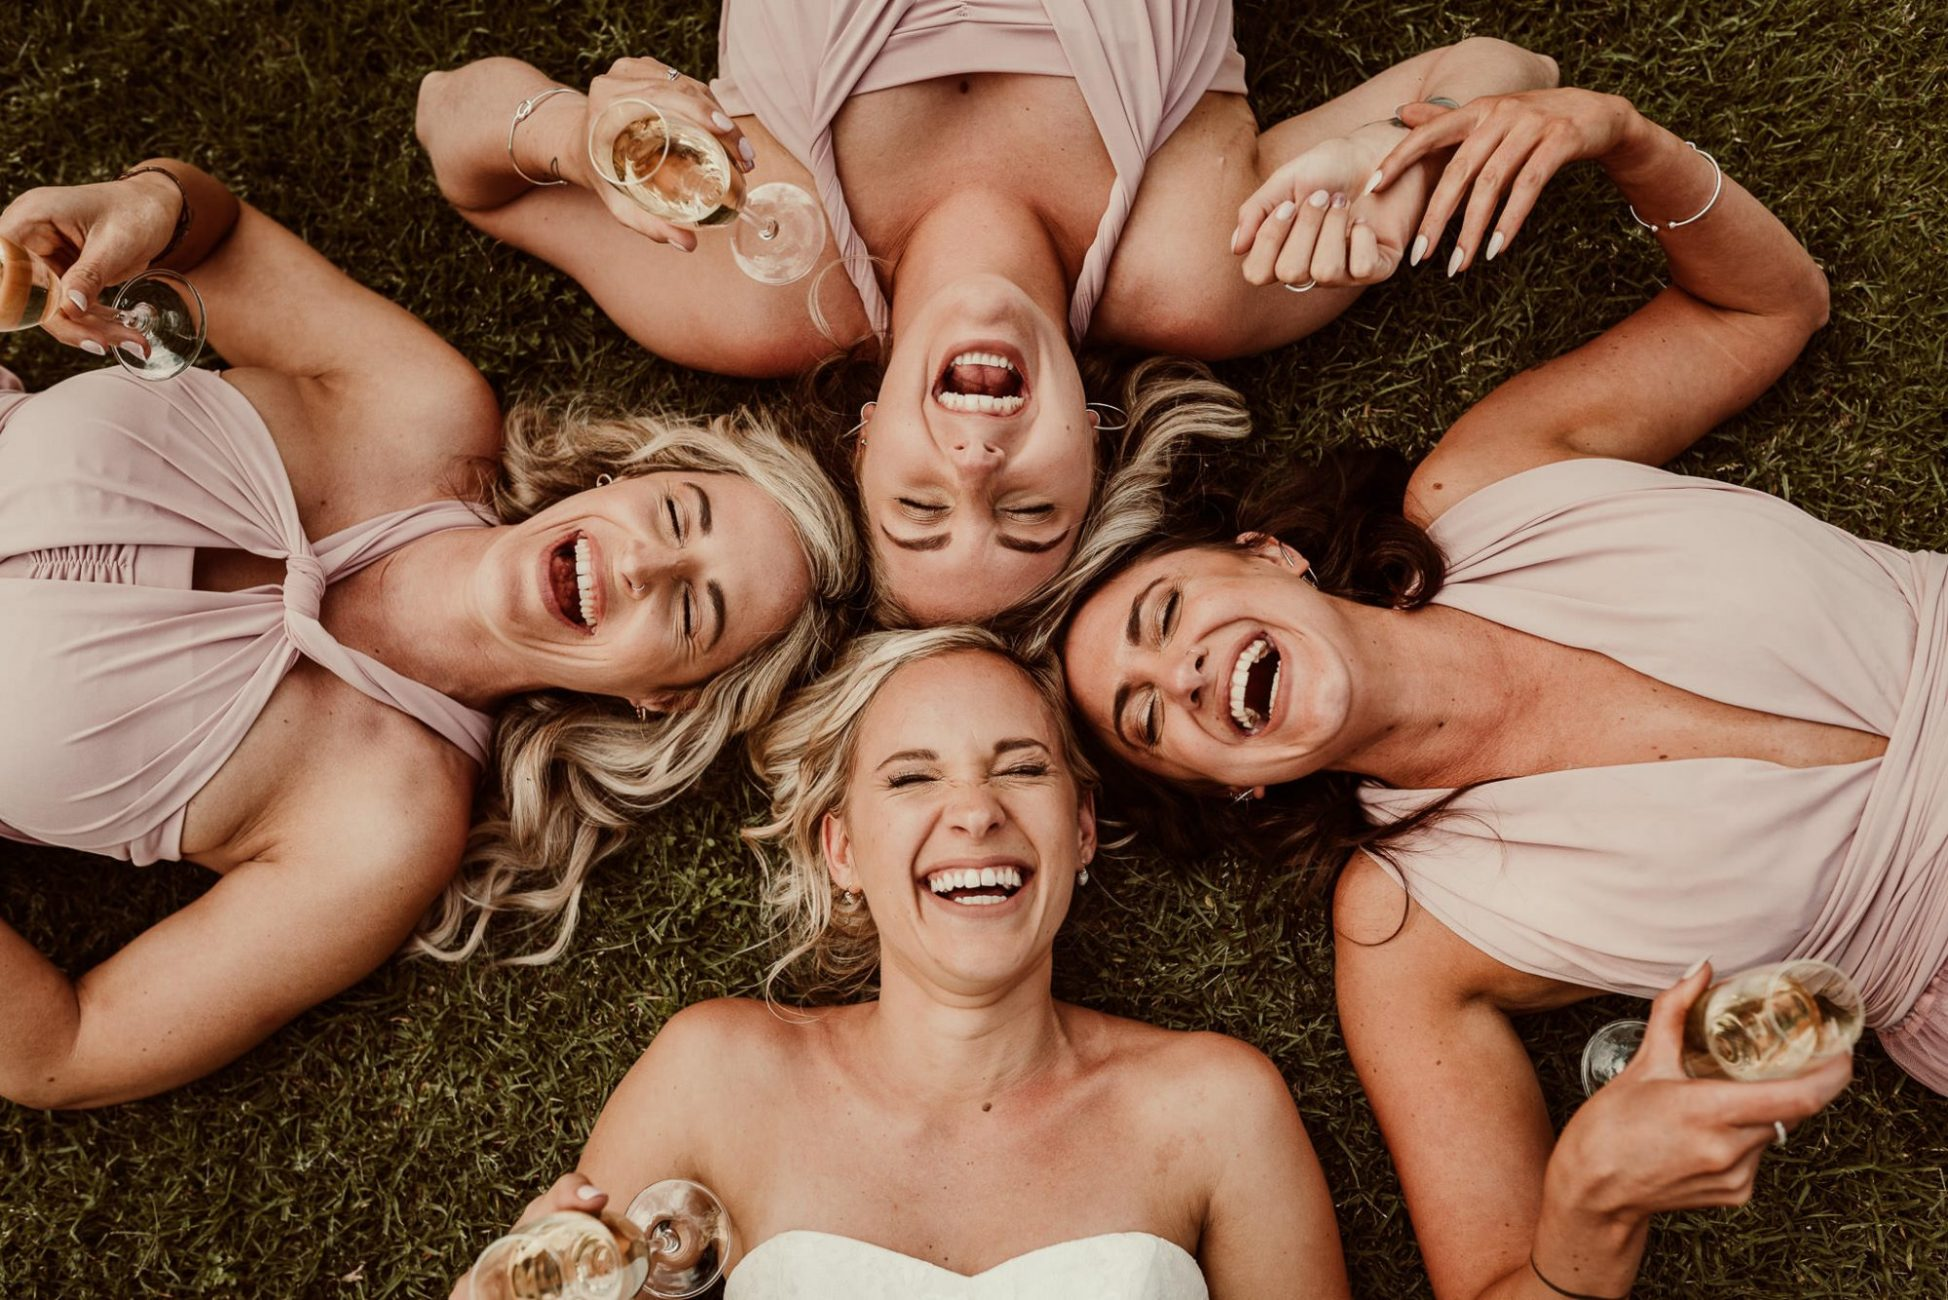 paarl_rhebokskloof_cr8tiveduo_capetown_photographer_wedding_bride_bridesmaid_creative_photoshoot_laugh_champagne_glasses_lying_on_grass